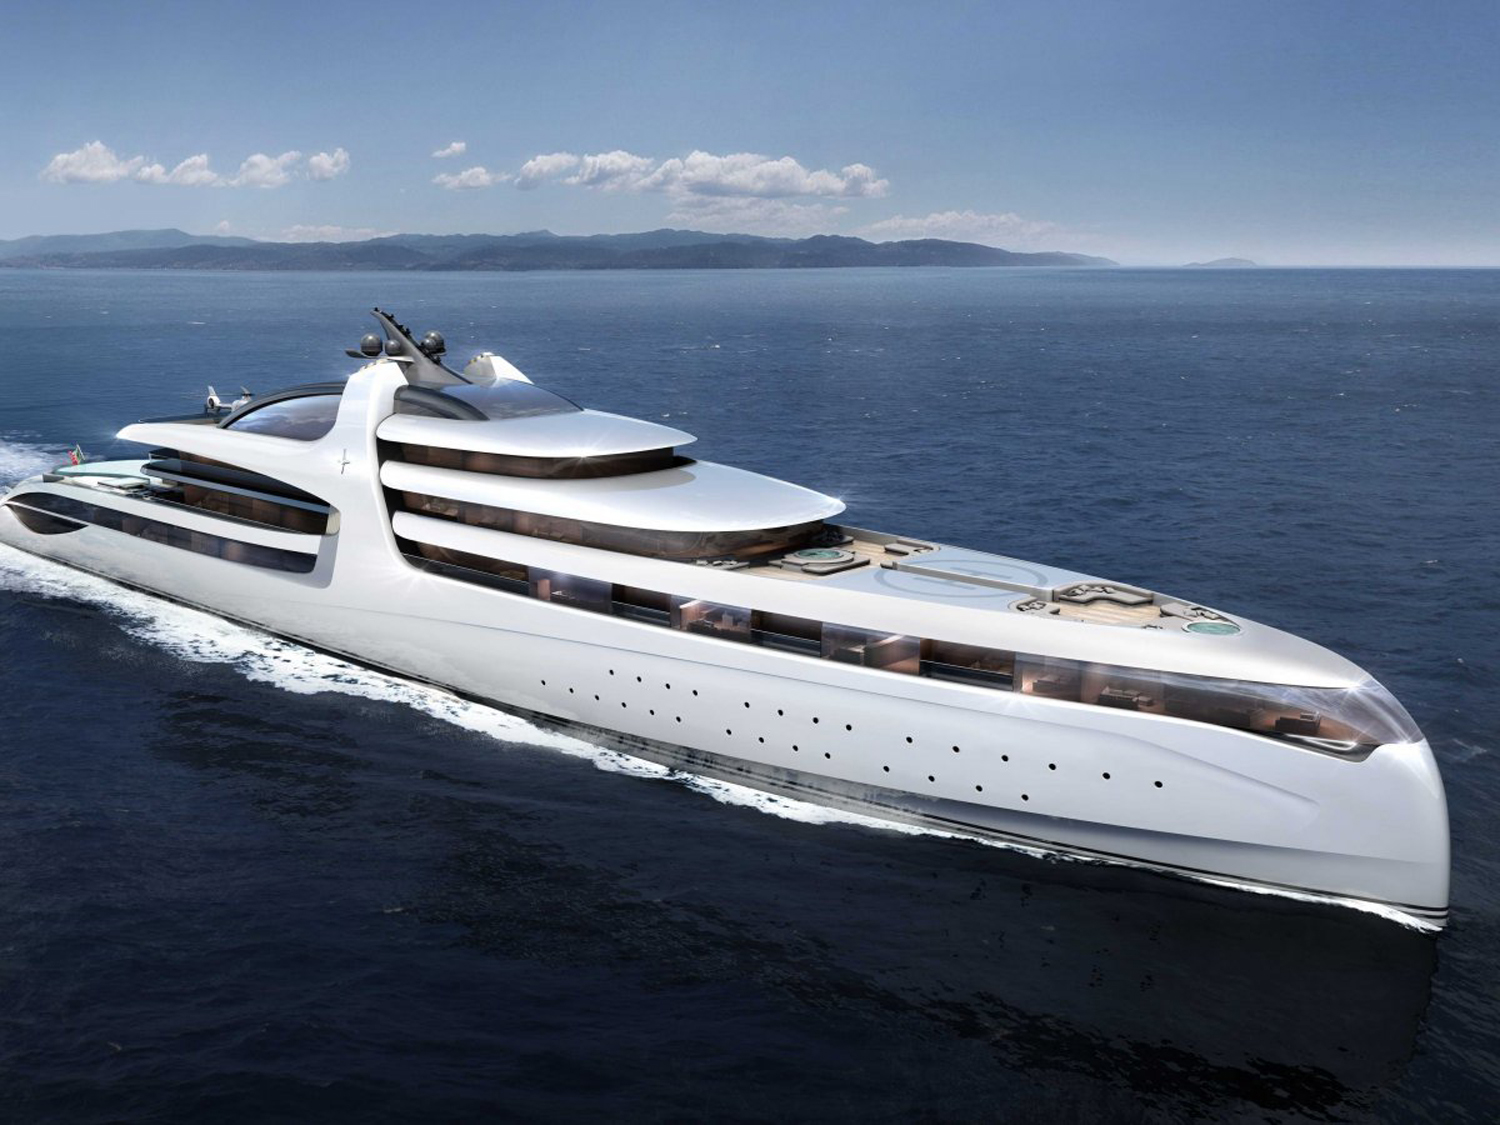 feast-your-eyes-on-the-admiral-x-force-145-it-doesnt-get-much-more-luxurious-than-this